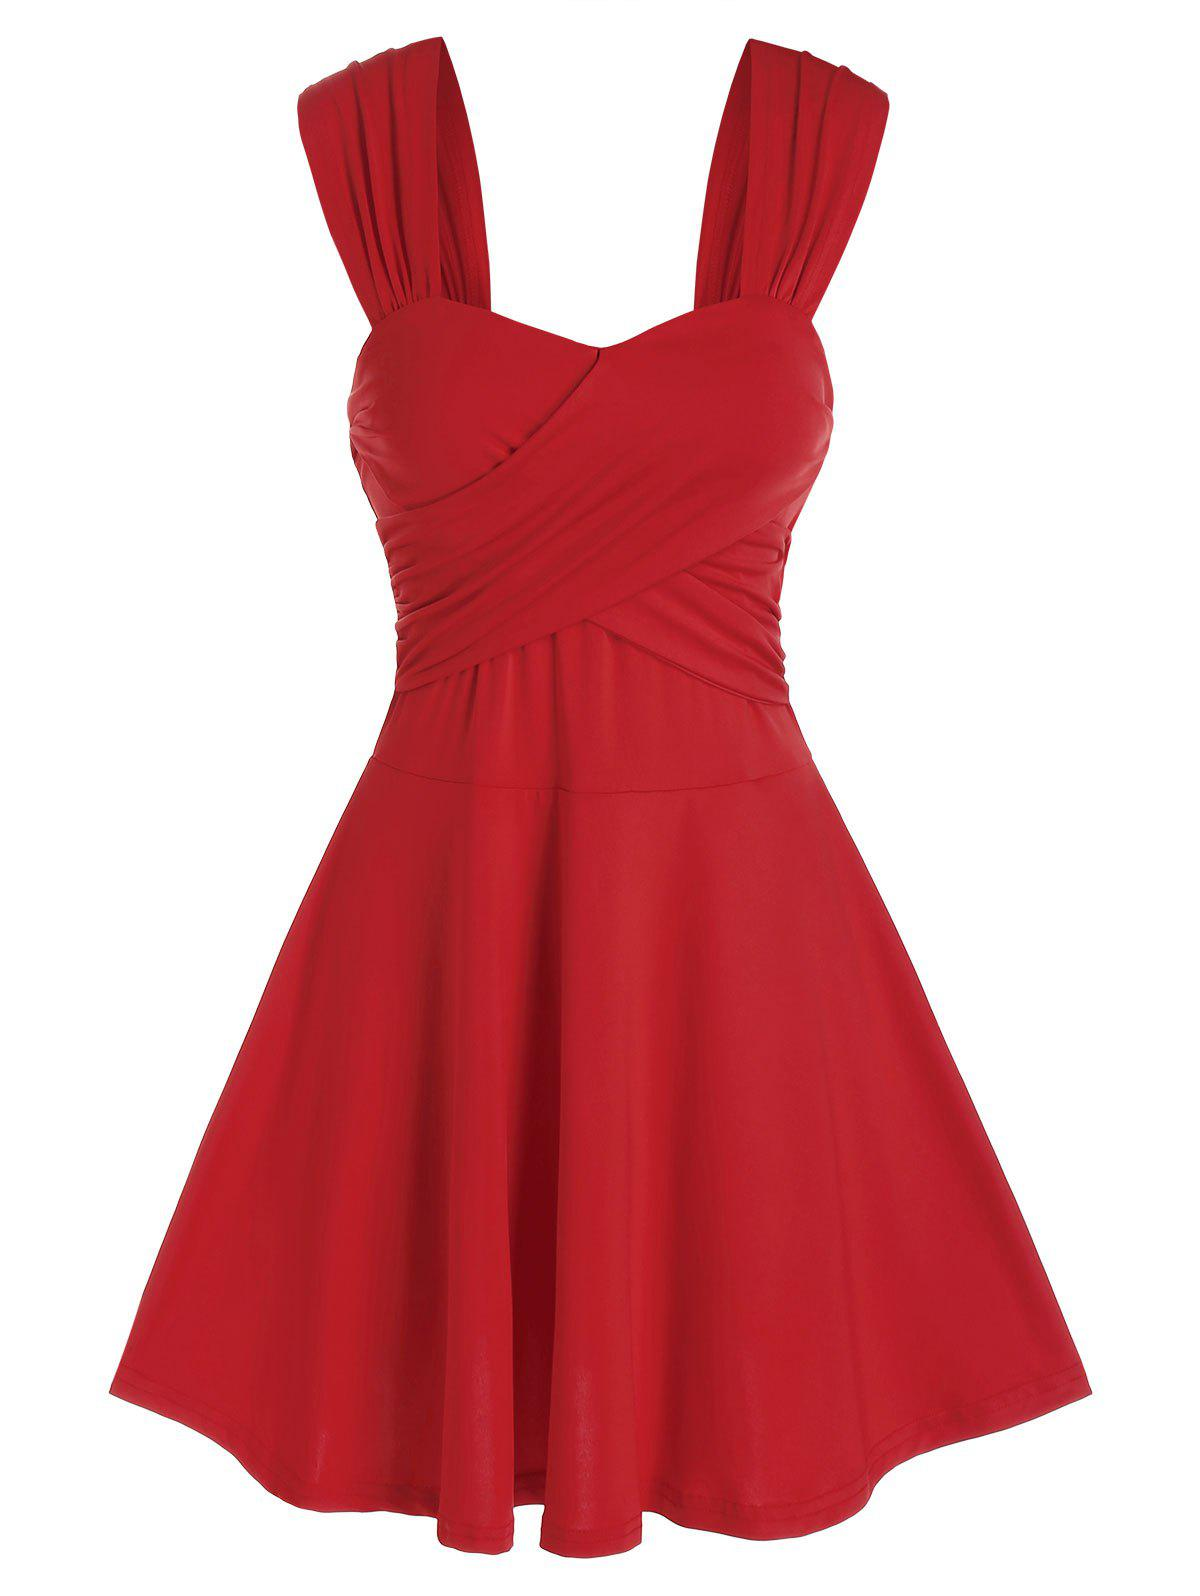 Sleeveless Crossover Flare Dress - RED 3XL